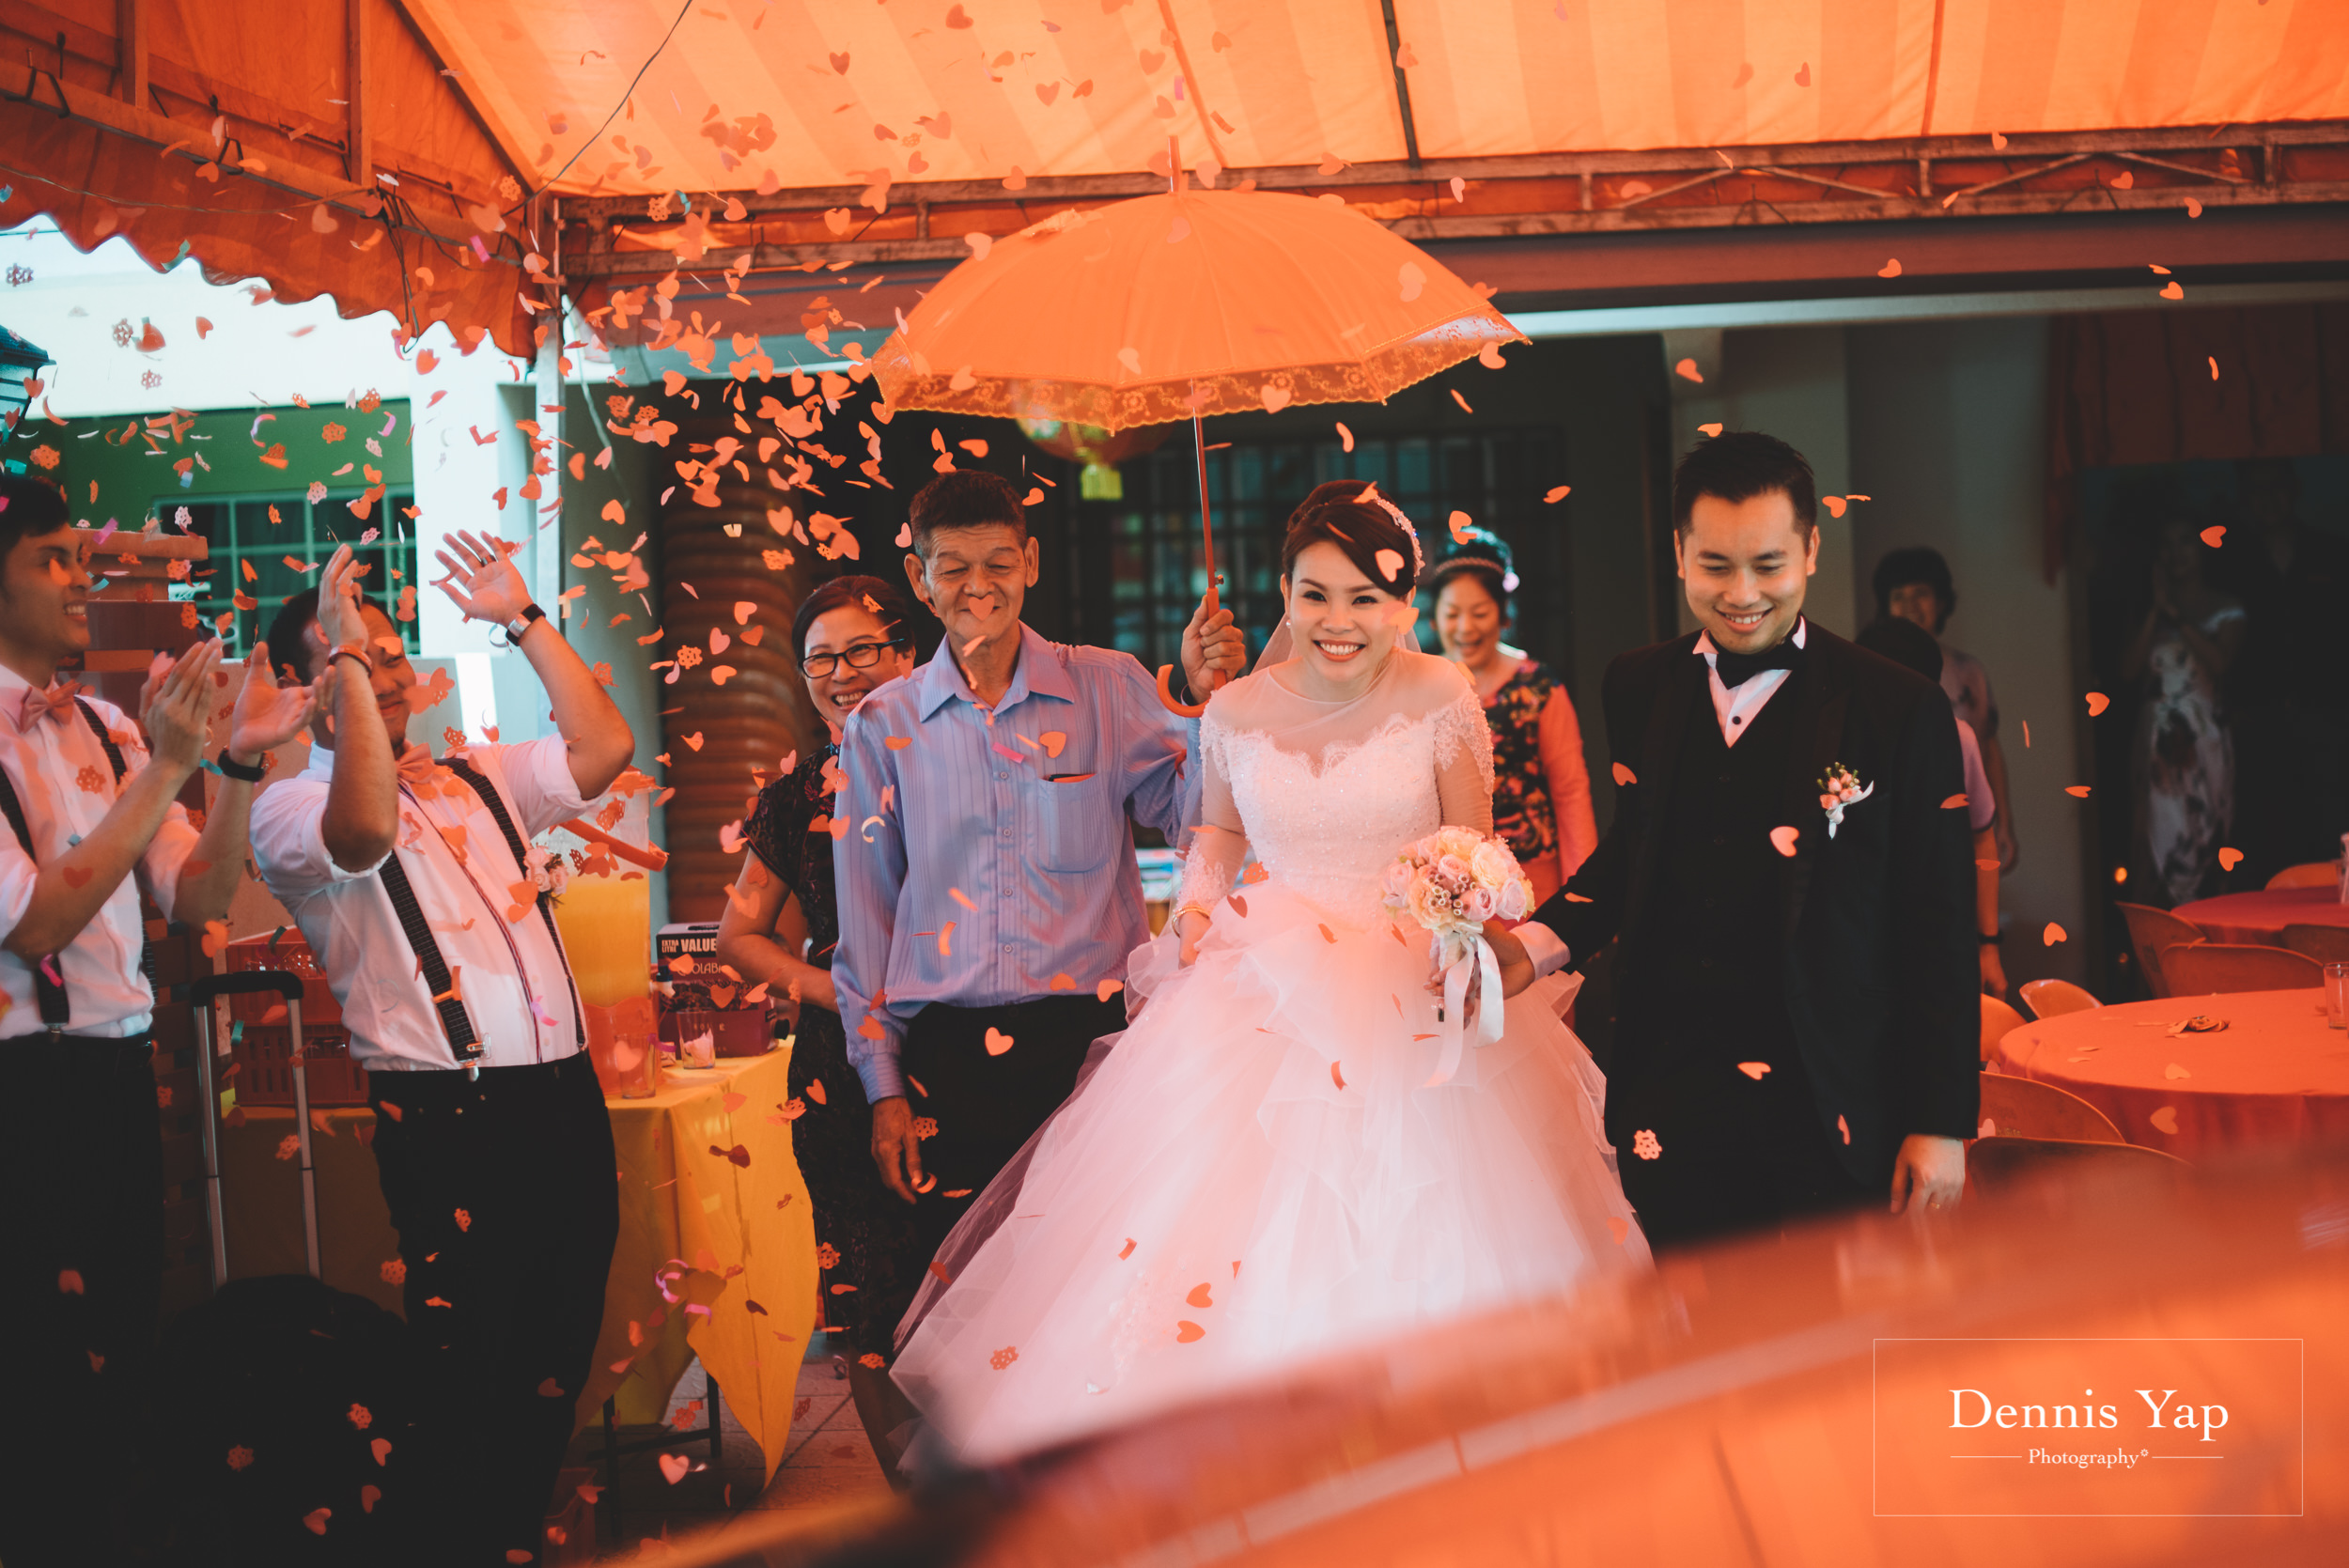 marcus emily wedding day gift exchange malaysia dennis yap photography-17.jpg